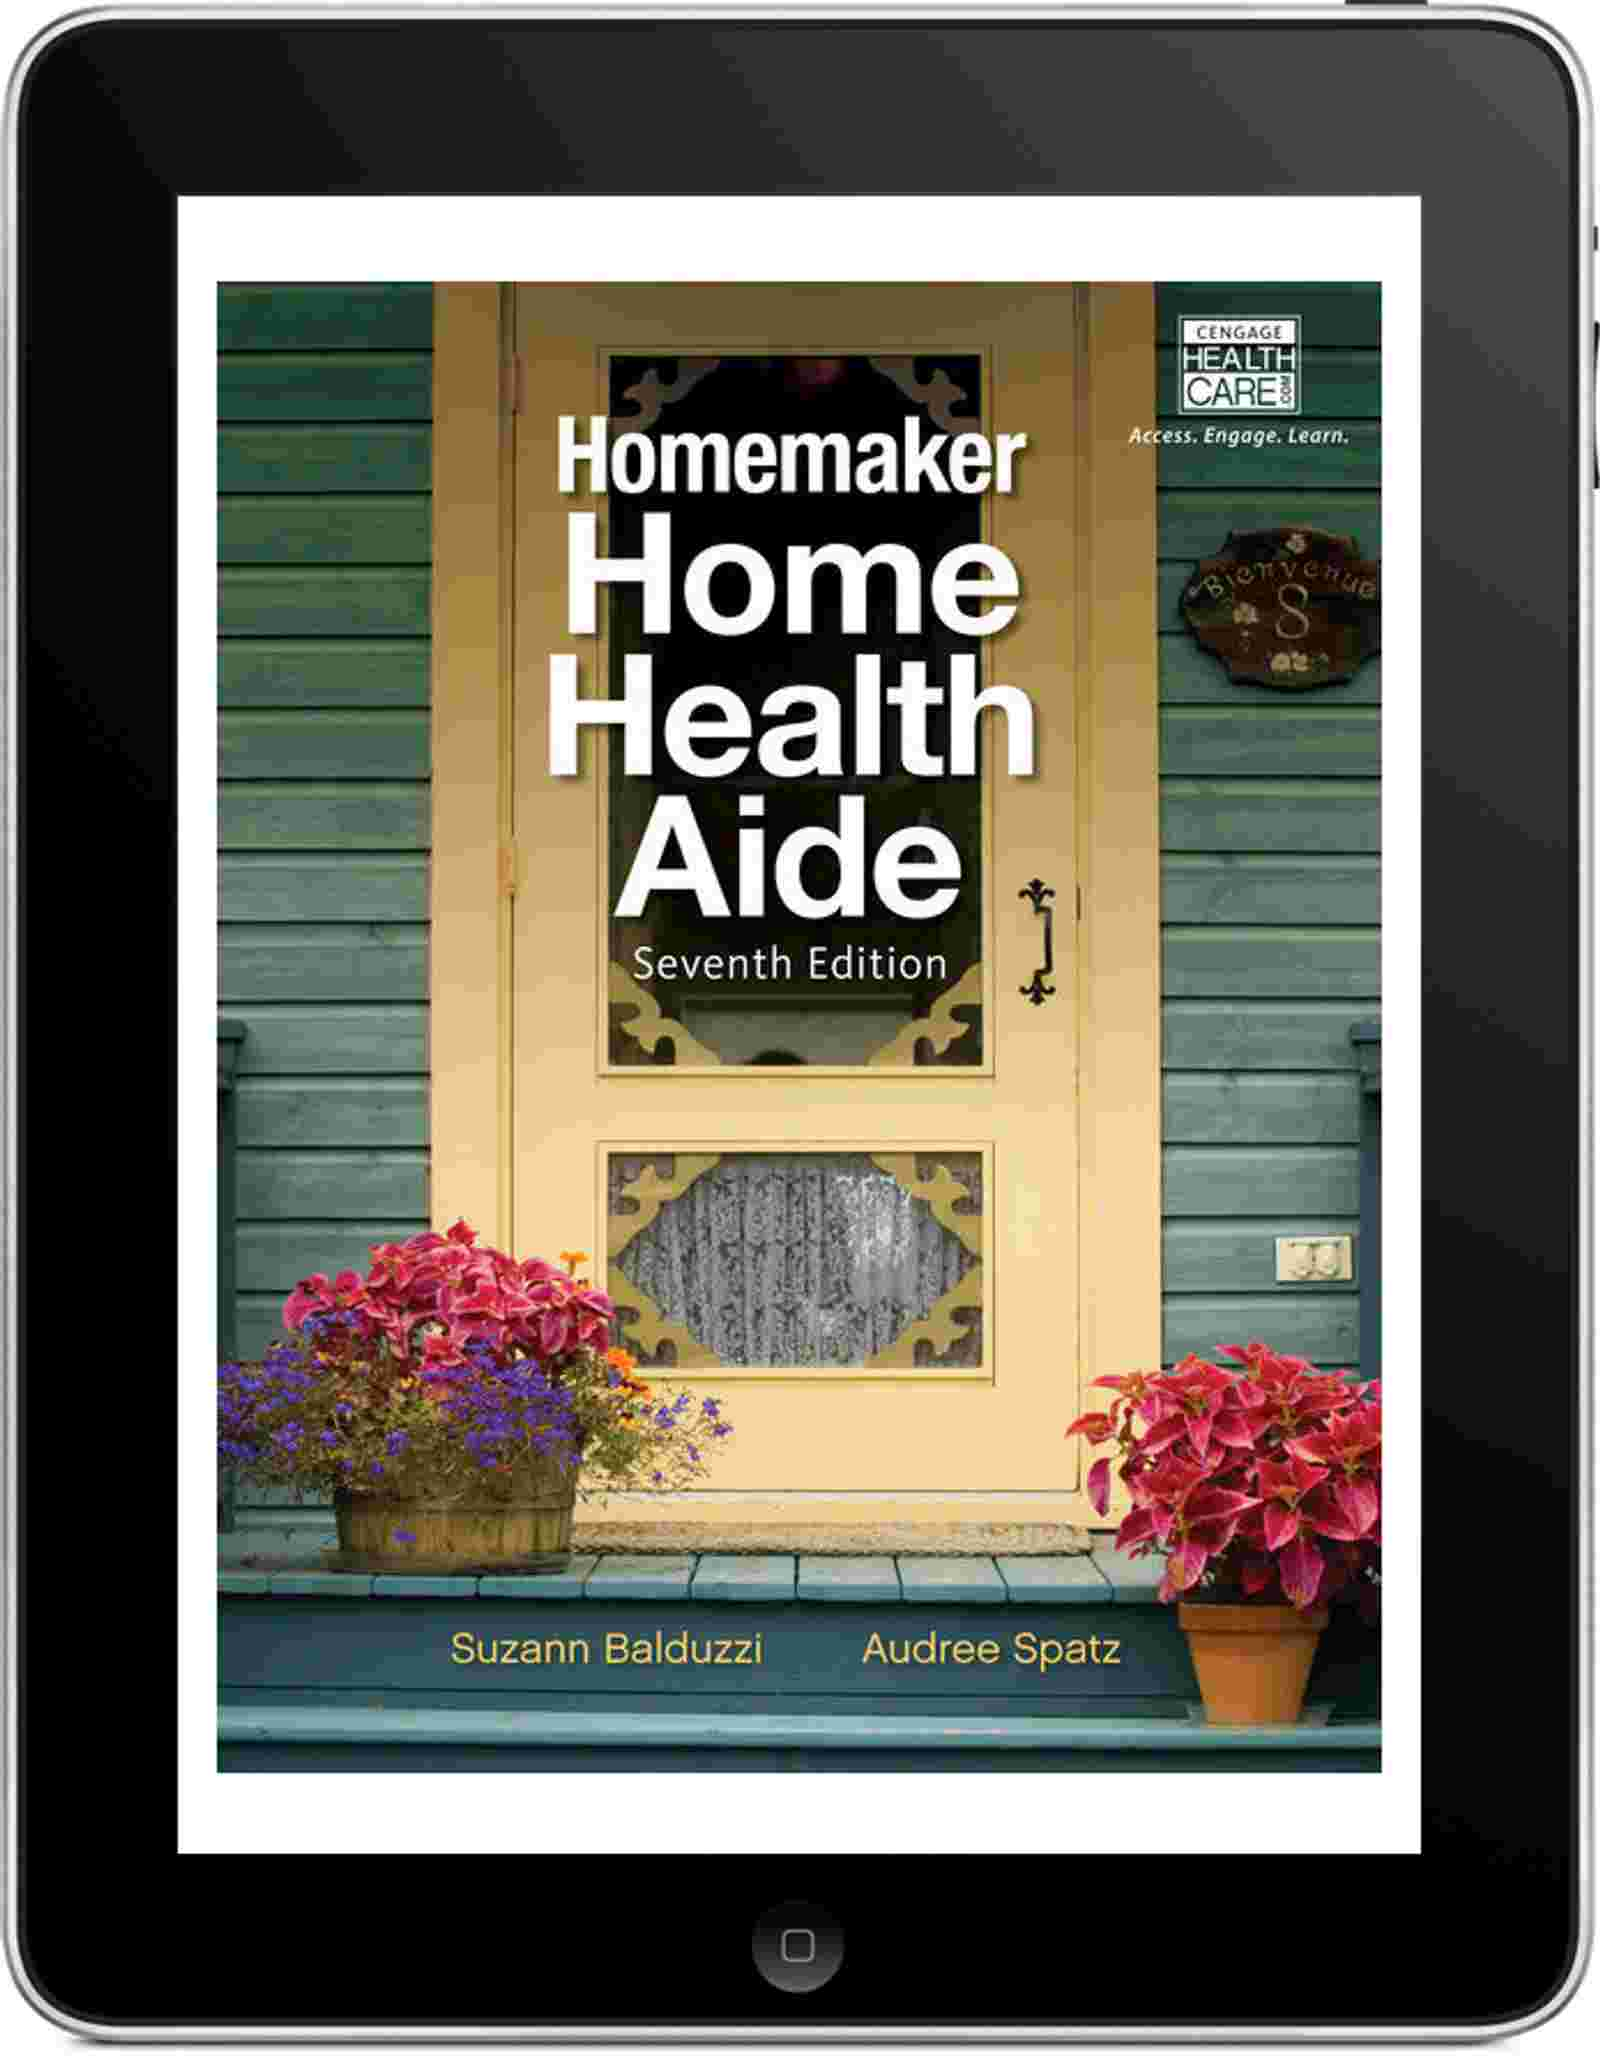 Homemaker Home Health Aide, 7th Edition